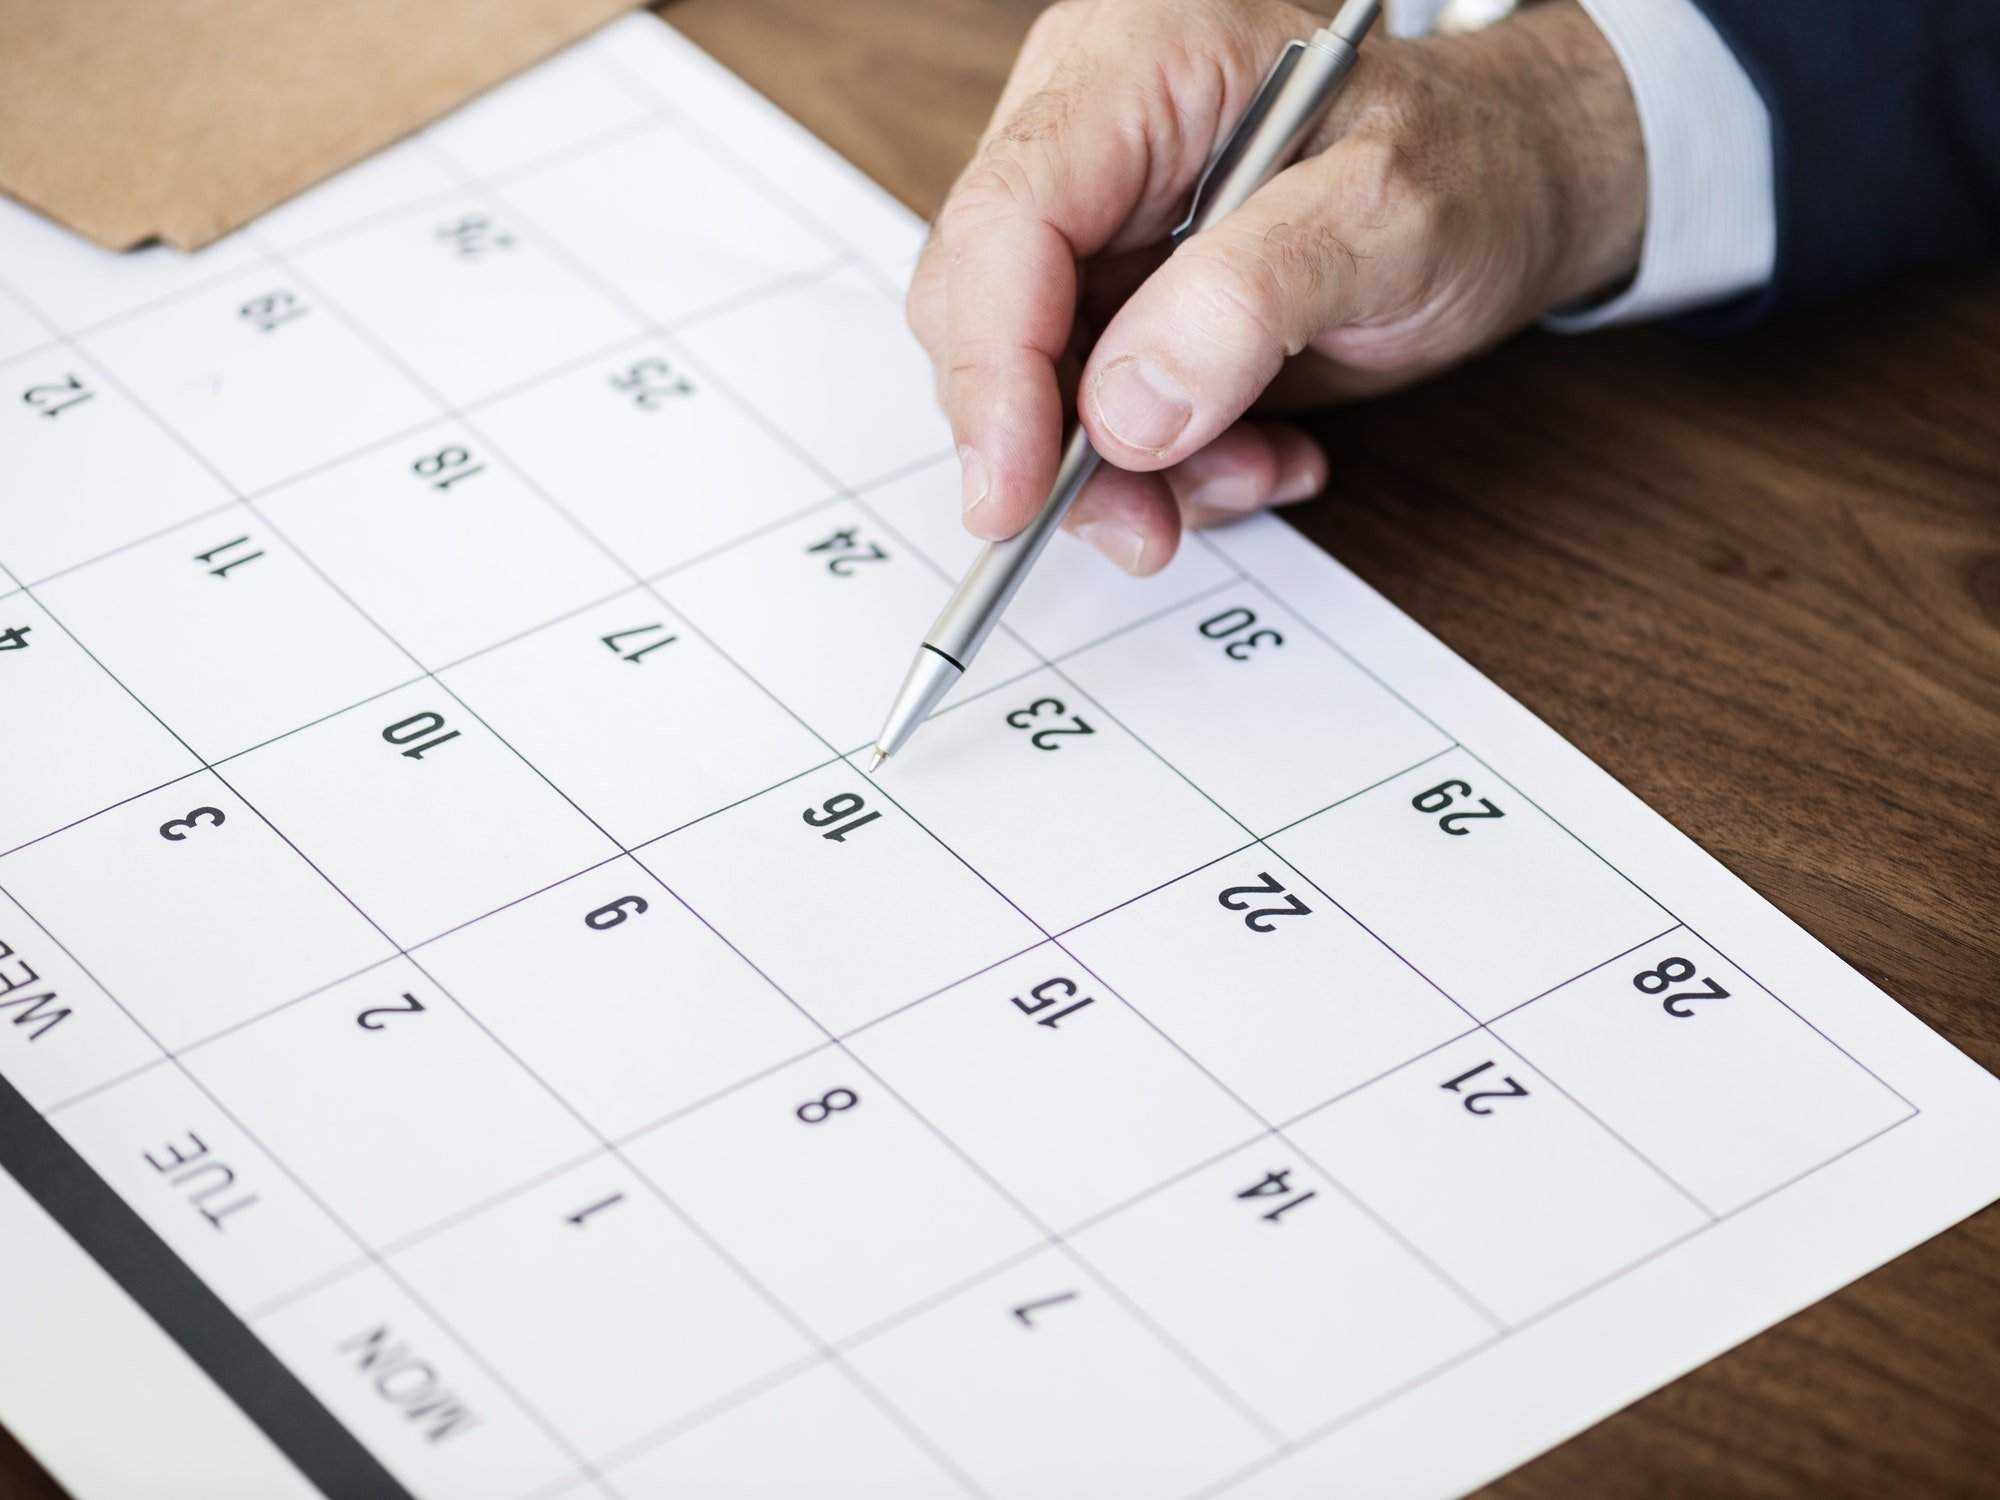 3 Changes to Your Calendar to Make You a Better Leader